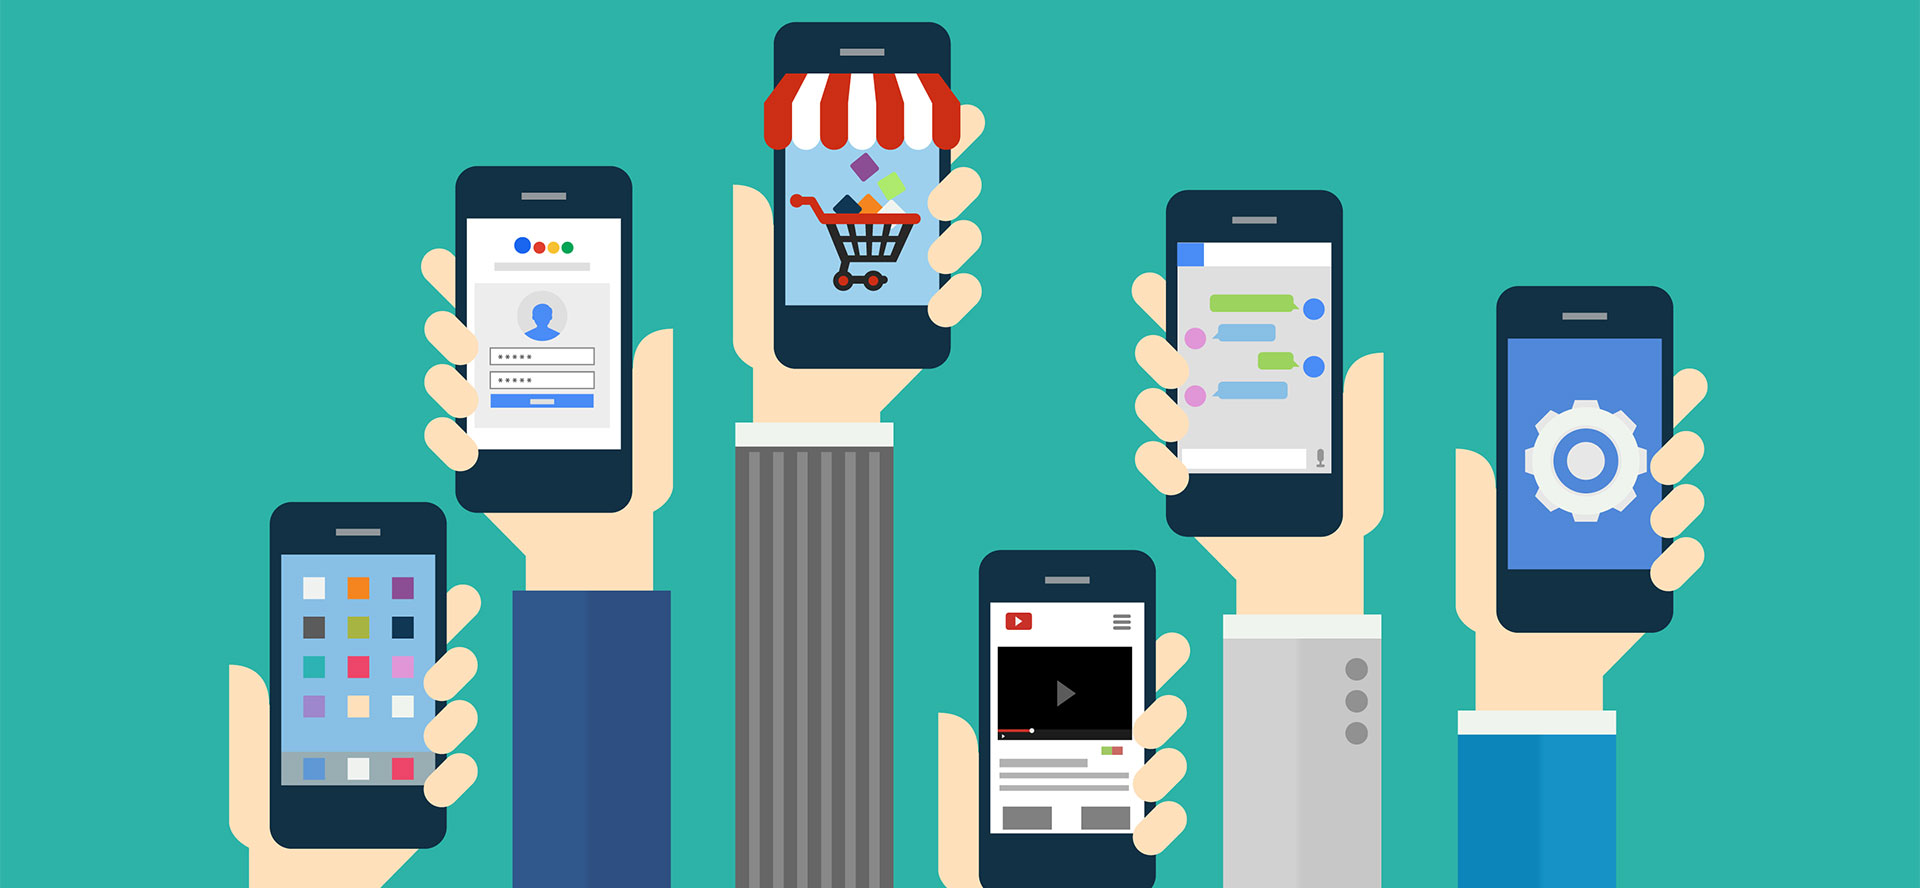 5 Tips for Building an Effective Small Business Mobile App